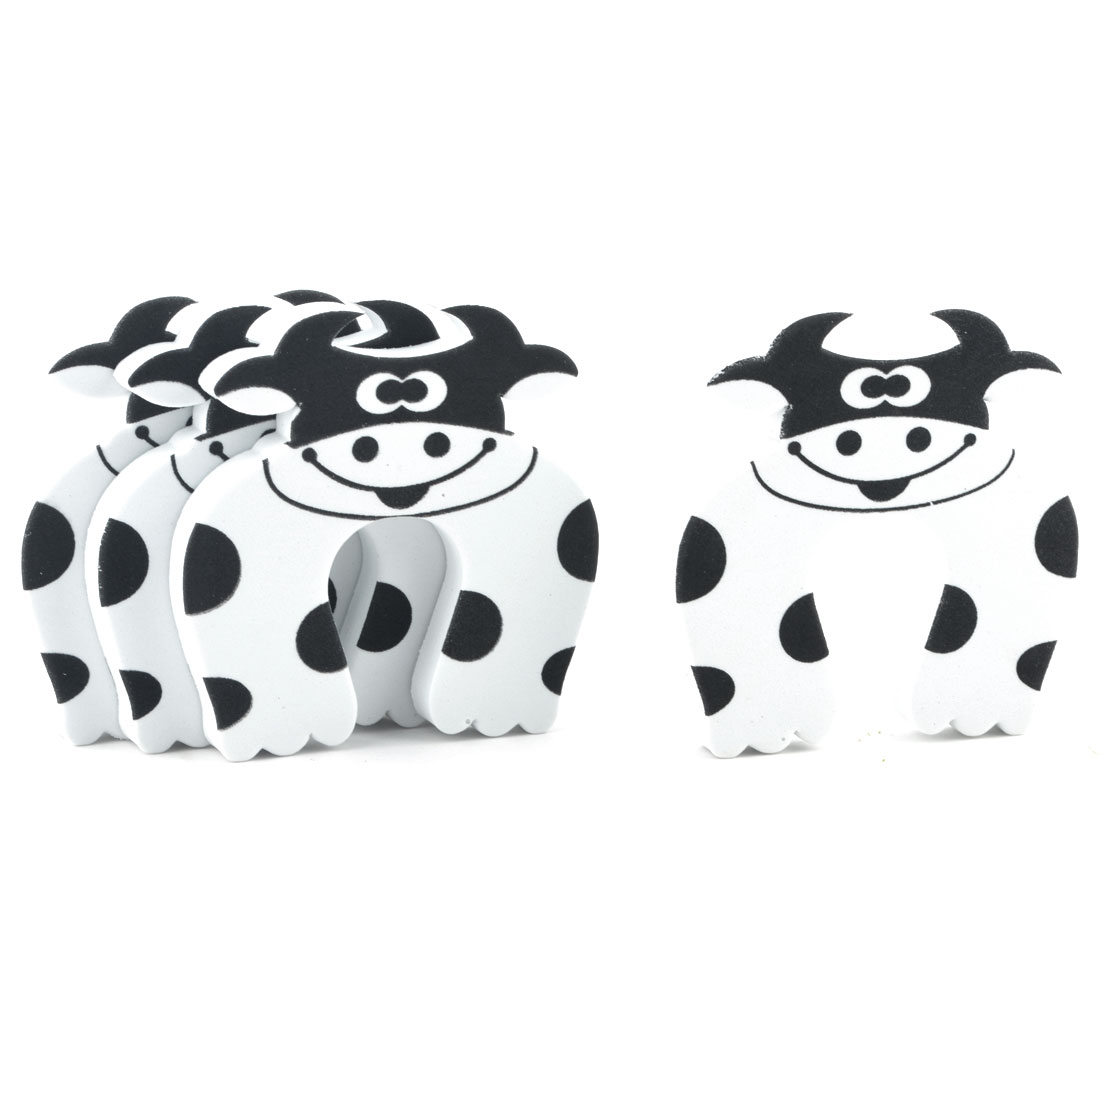 EVA Cartoon White Cow Finger Protector Safety Guard Doorstop Door Stopper Lock 4pcs